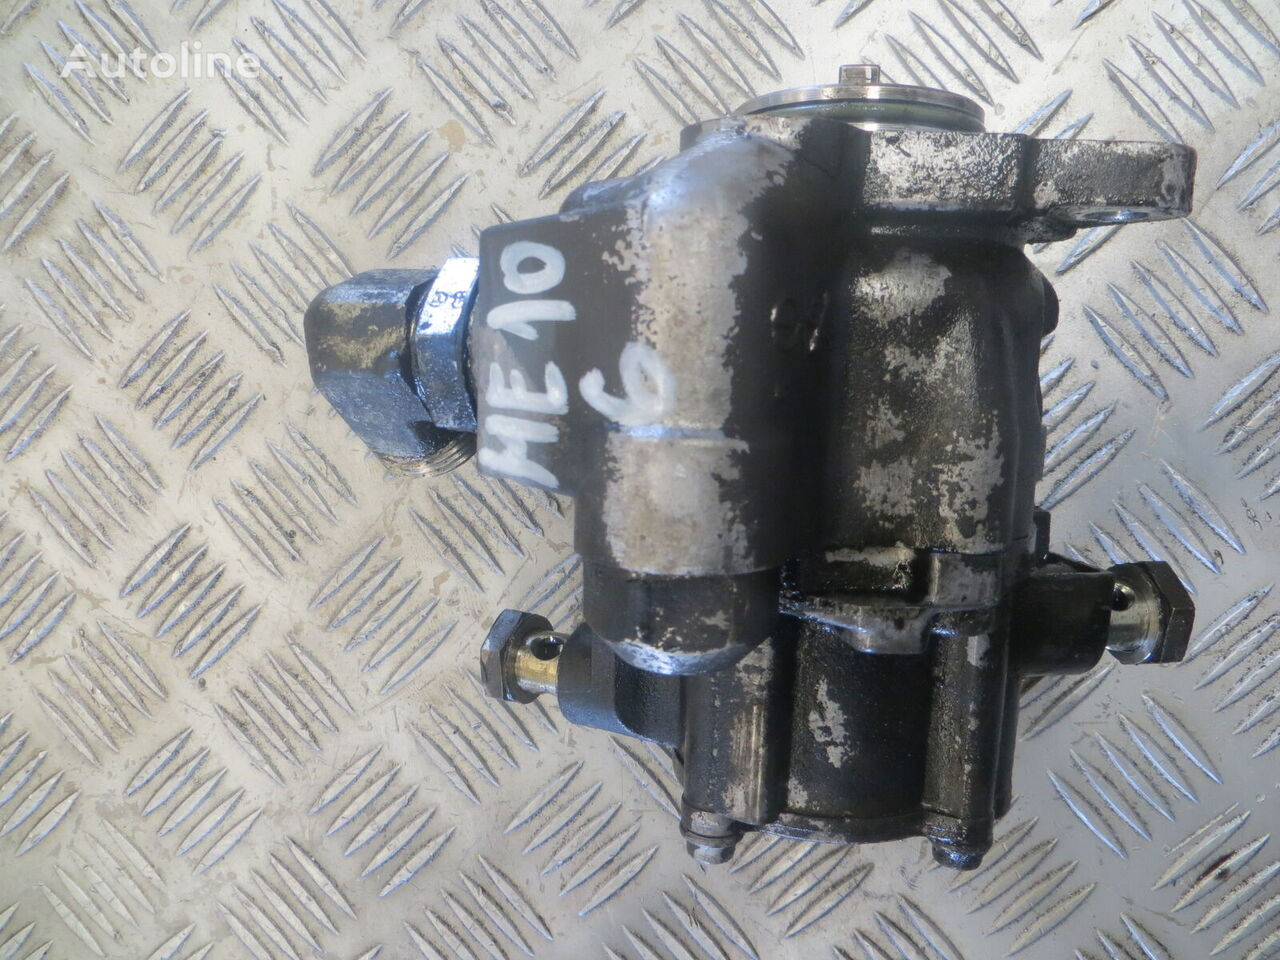 MERCEDES-BENZ Pompa alimentare si pompa servo Mercedes / ME10/6 / 0034604980 power steering pump for MERCEDES-BENZ ACTROS tractor unit